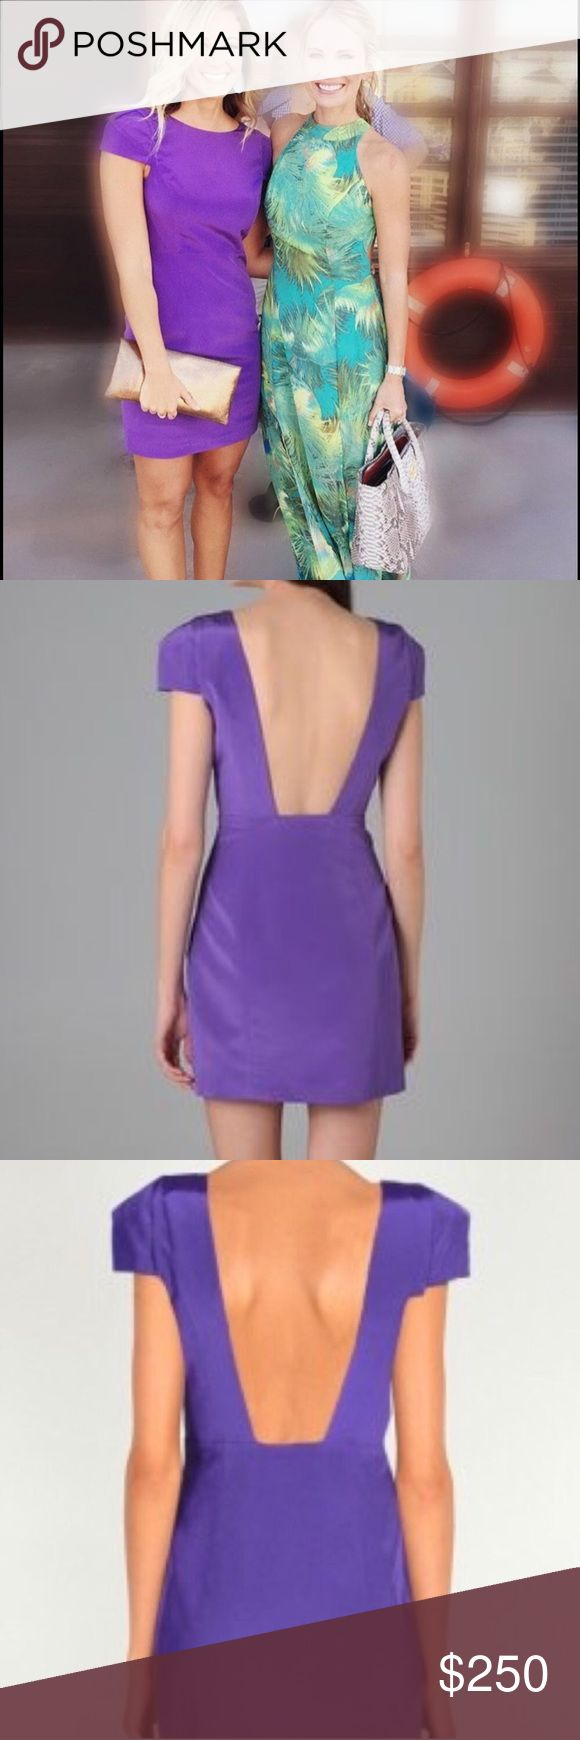 Southern Charm Tibi Dress Just gorgeous!! Silk Tibi dress. It is a purple color with a hidden zipper going down the side. The back is a drop style. The sleeves are capped, and are lightly padded. Perfect condition! worn once! As seen on the gorgeous Chelsea from Bravo tv's hit show Southern Charm!!! She wore it to Sheps Bday party on the boat!! Tibi Dresses